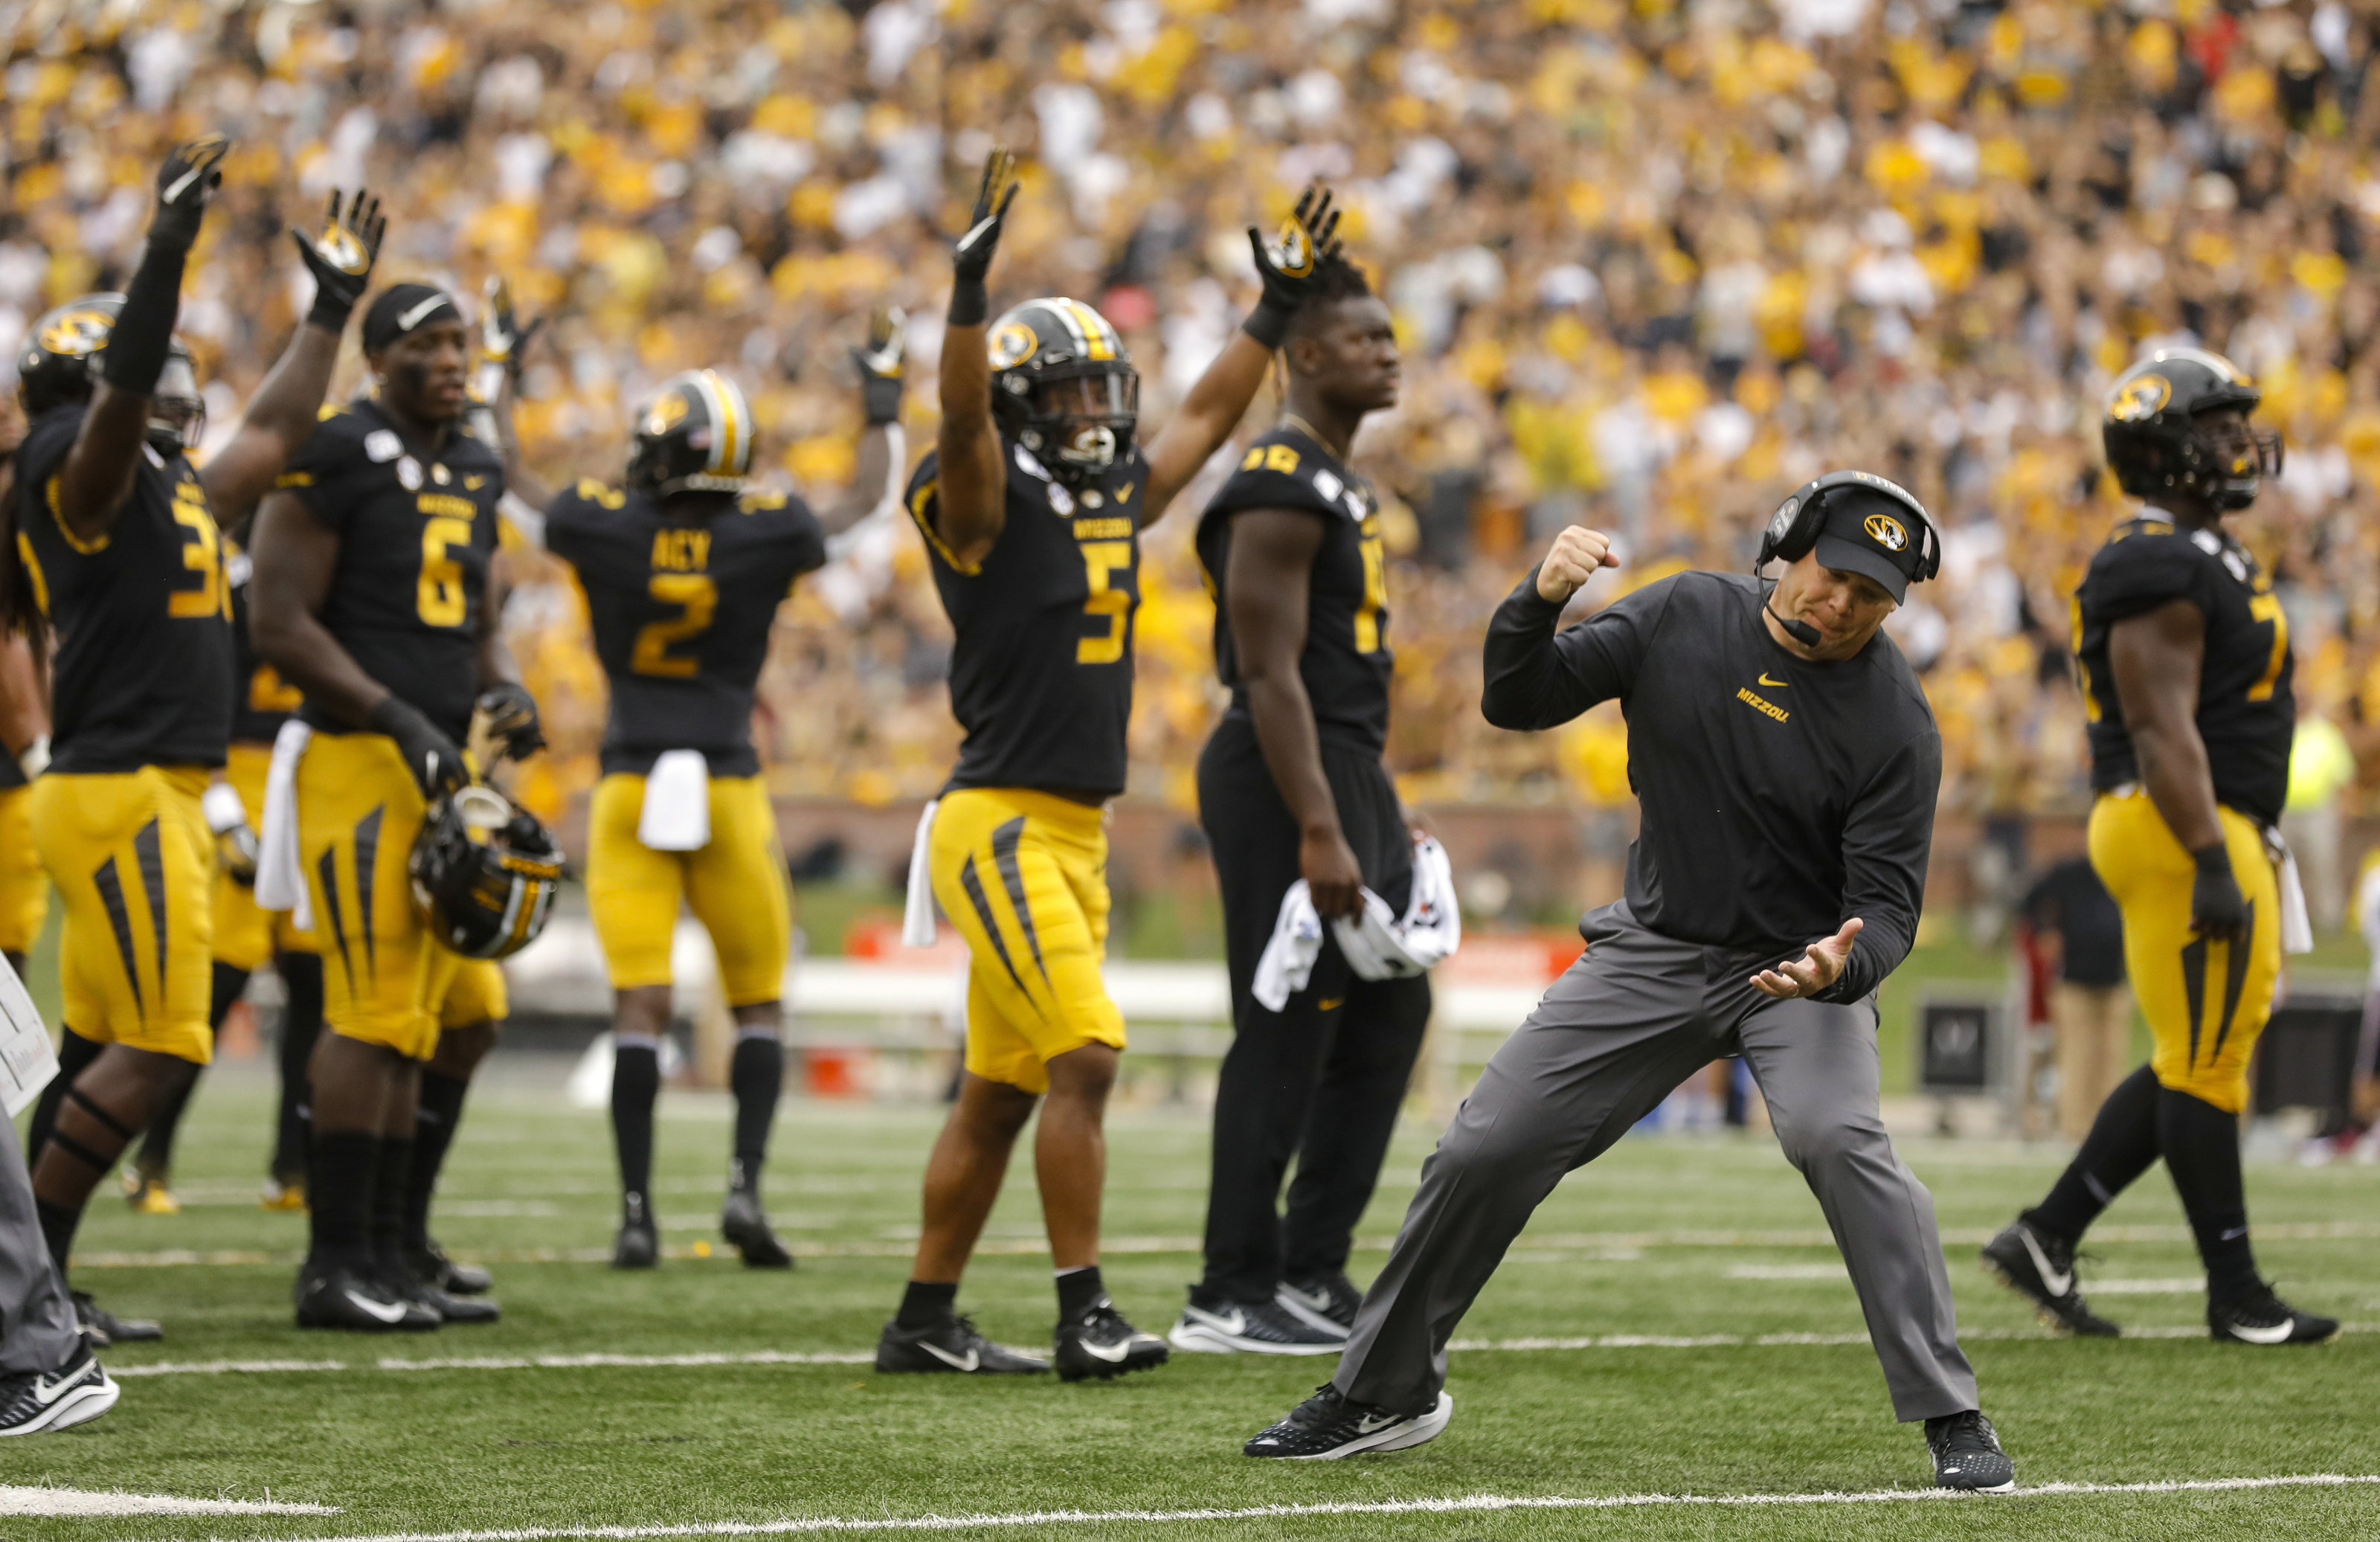 Mizzou Football Team Grades After Four Weeks